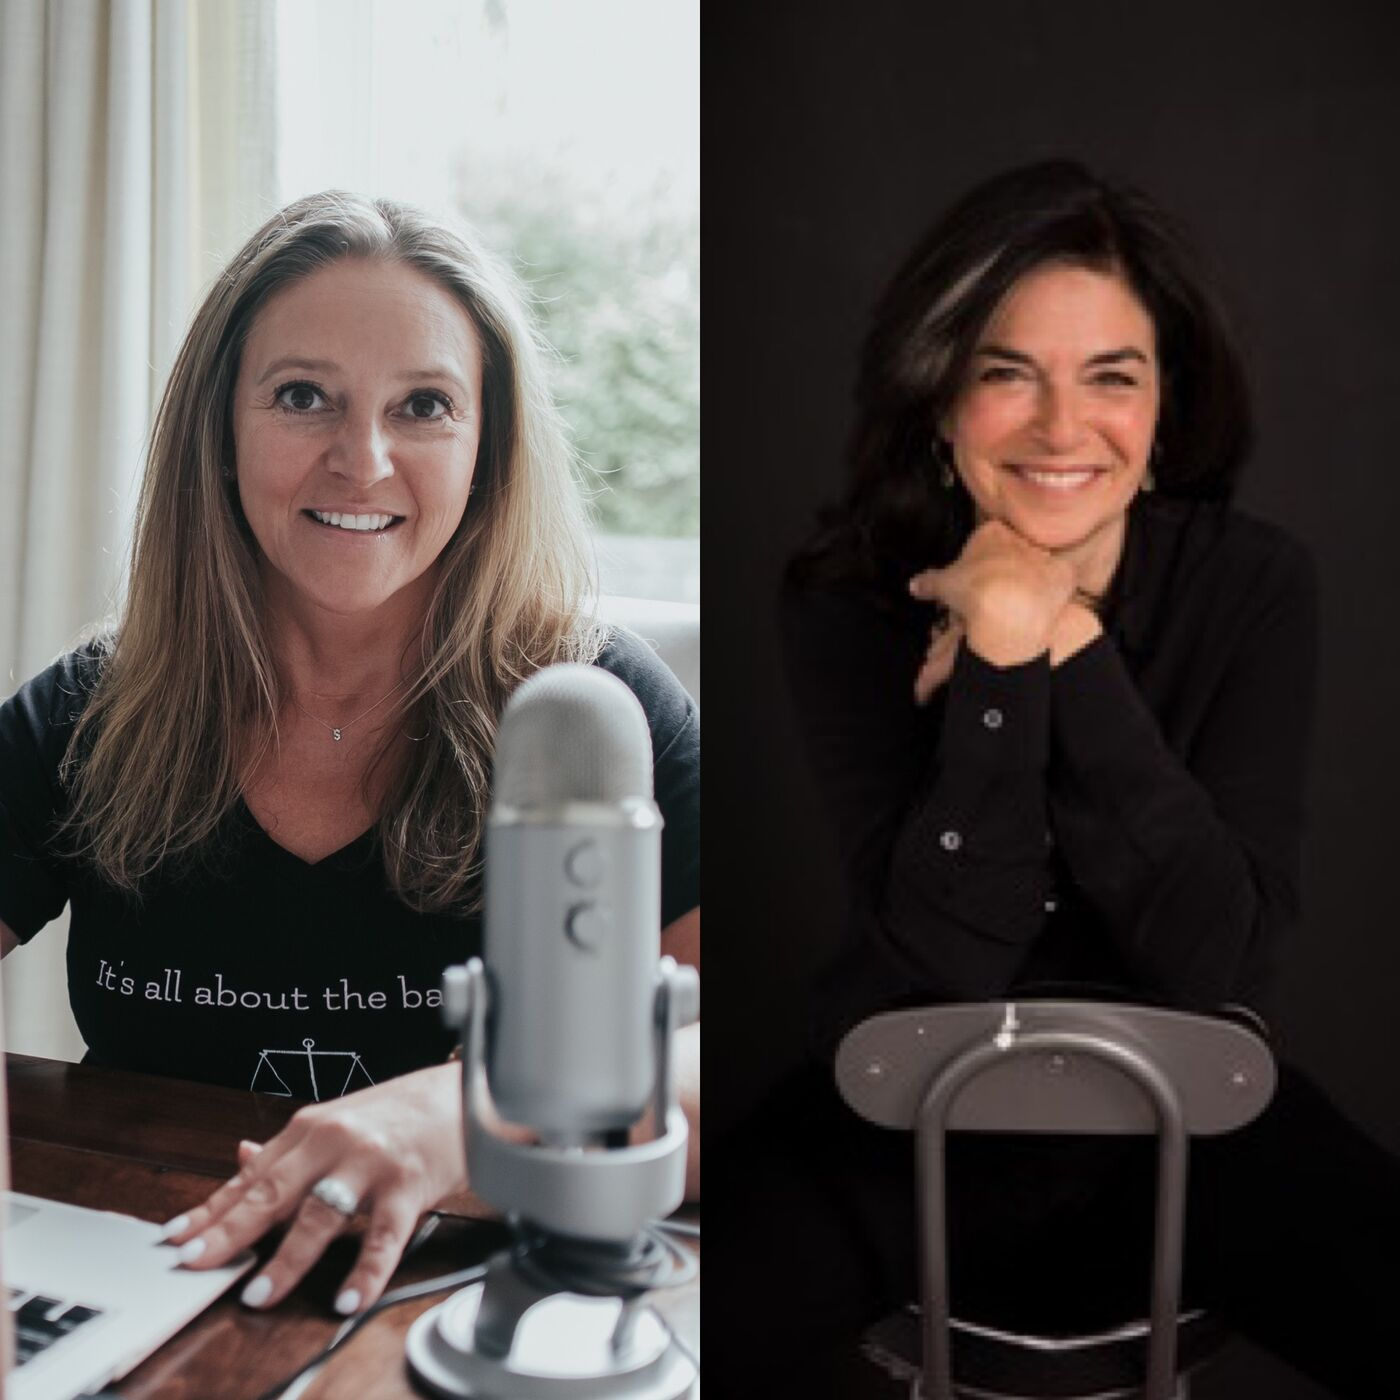 Episode 30 - Aging Well & Biohacking with Nathalie Niddam